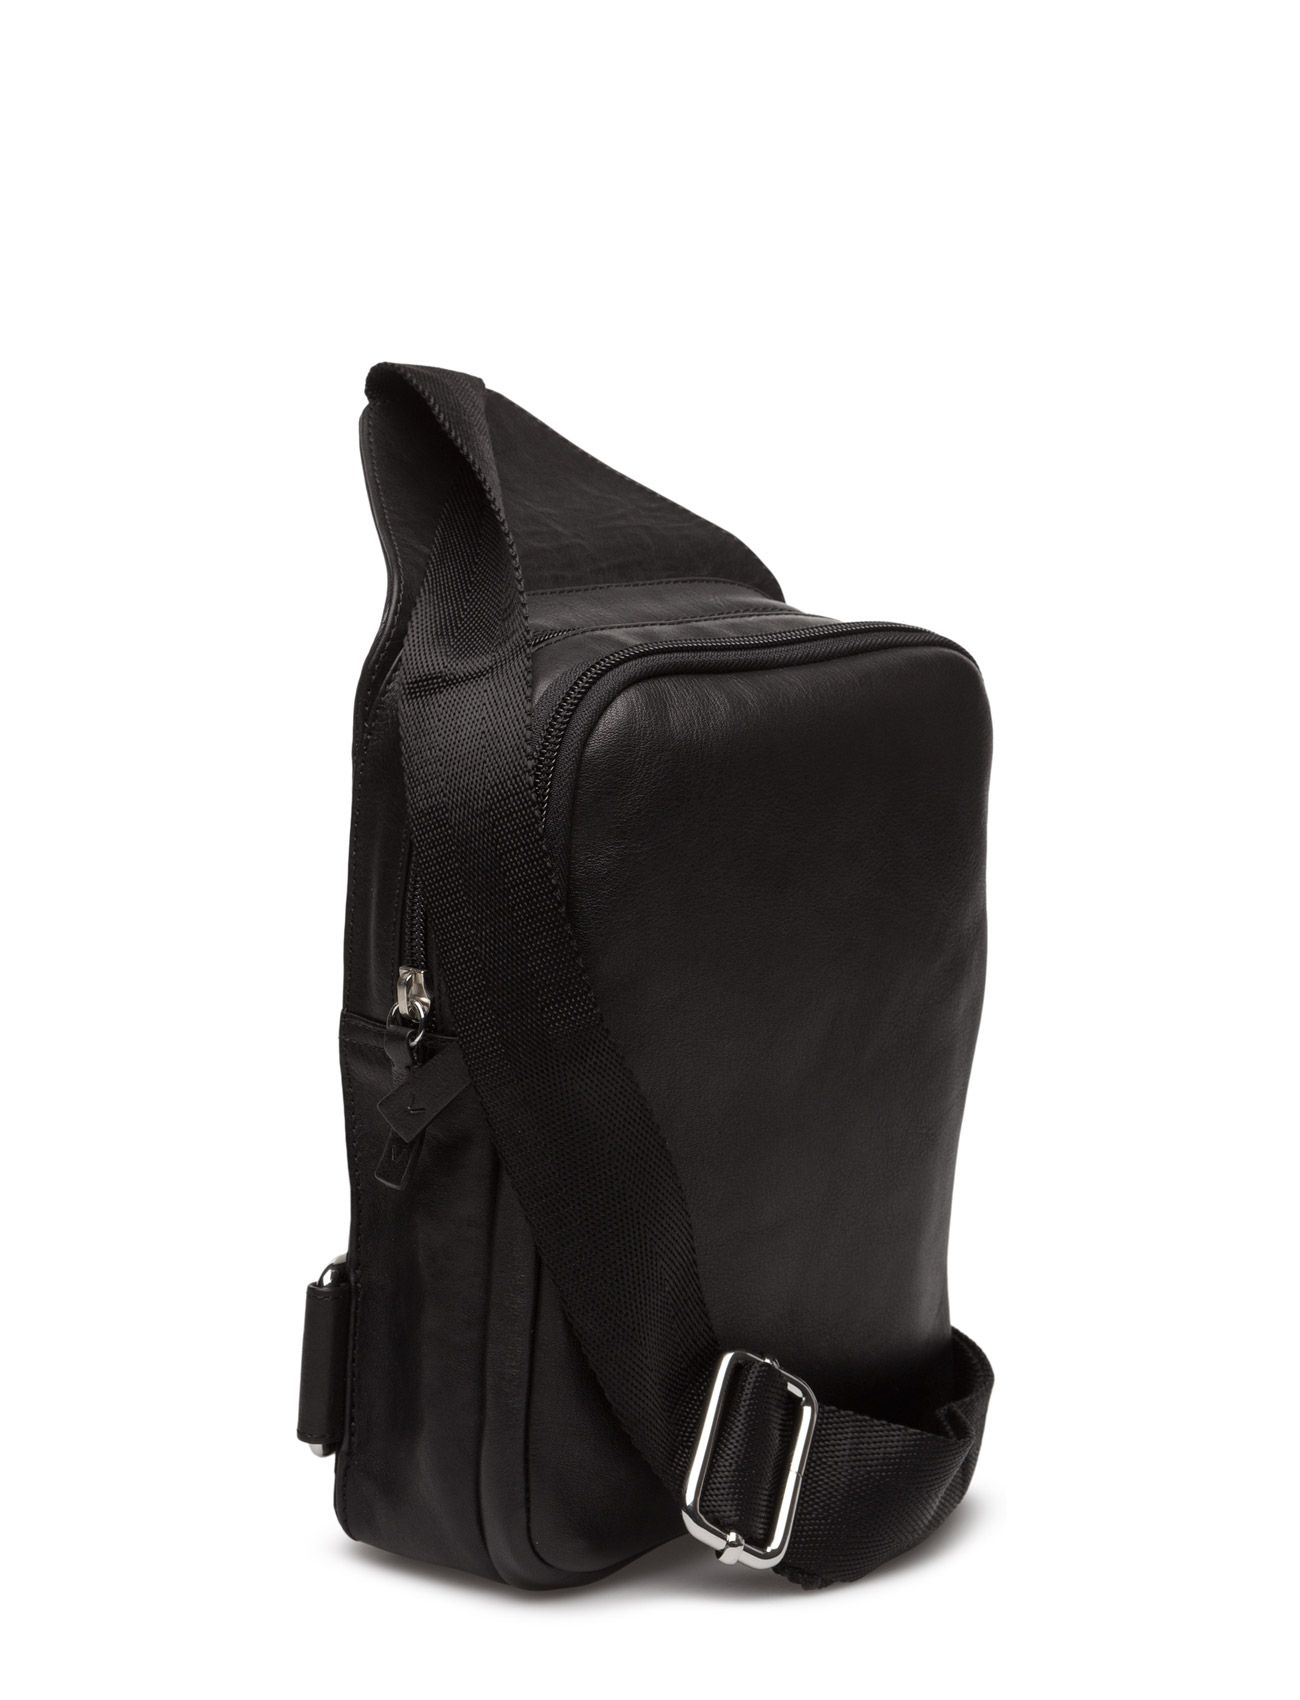 Vagabond leather backpack